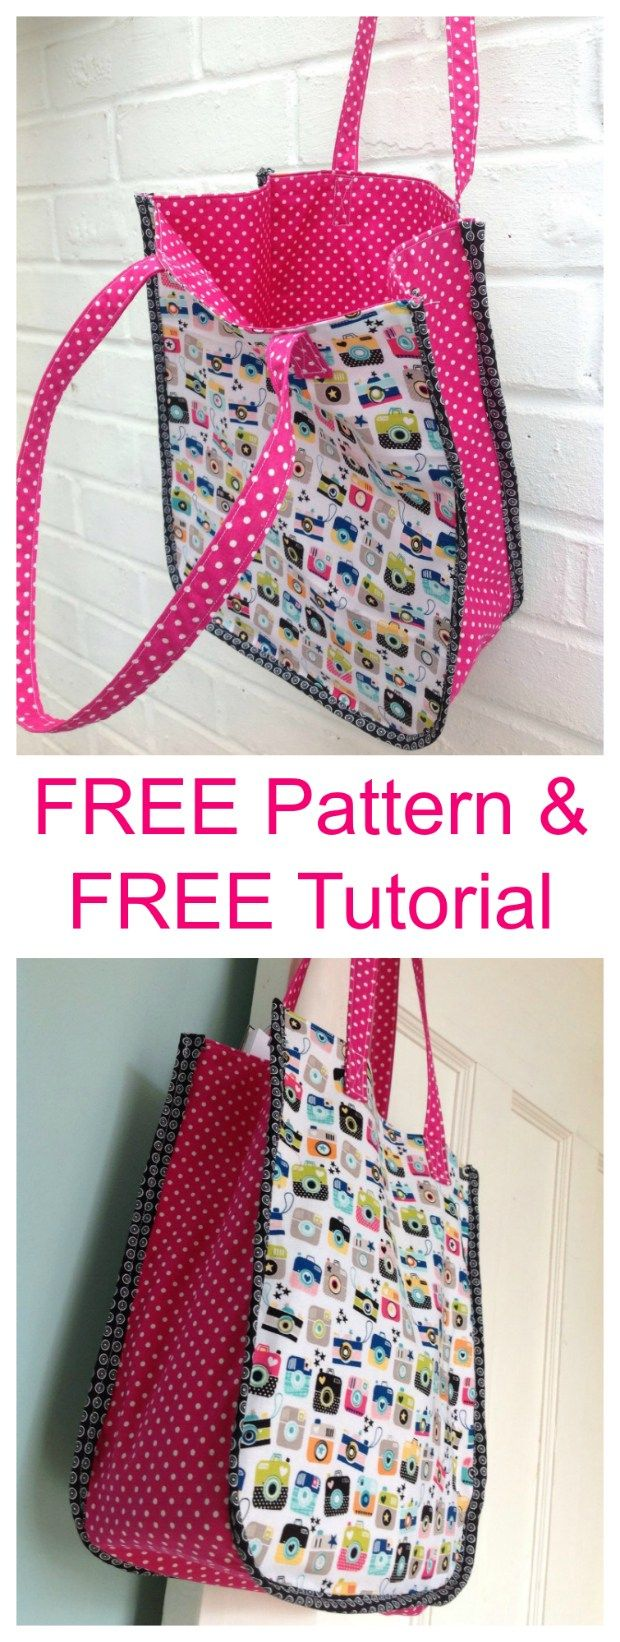 The Instamatic Tote Bag gets its name obviously from the cute fabric that was used. This is both an easy to sew Tote Bag and is the perfect size for you. #freesewingpattern #freebagpattern #totebagpattern